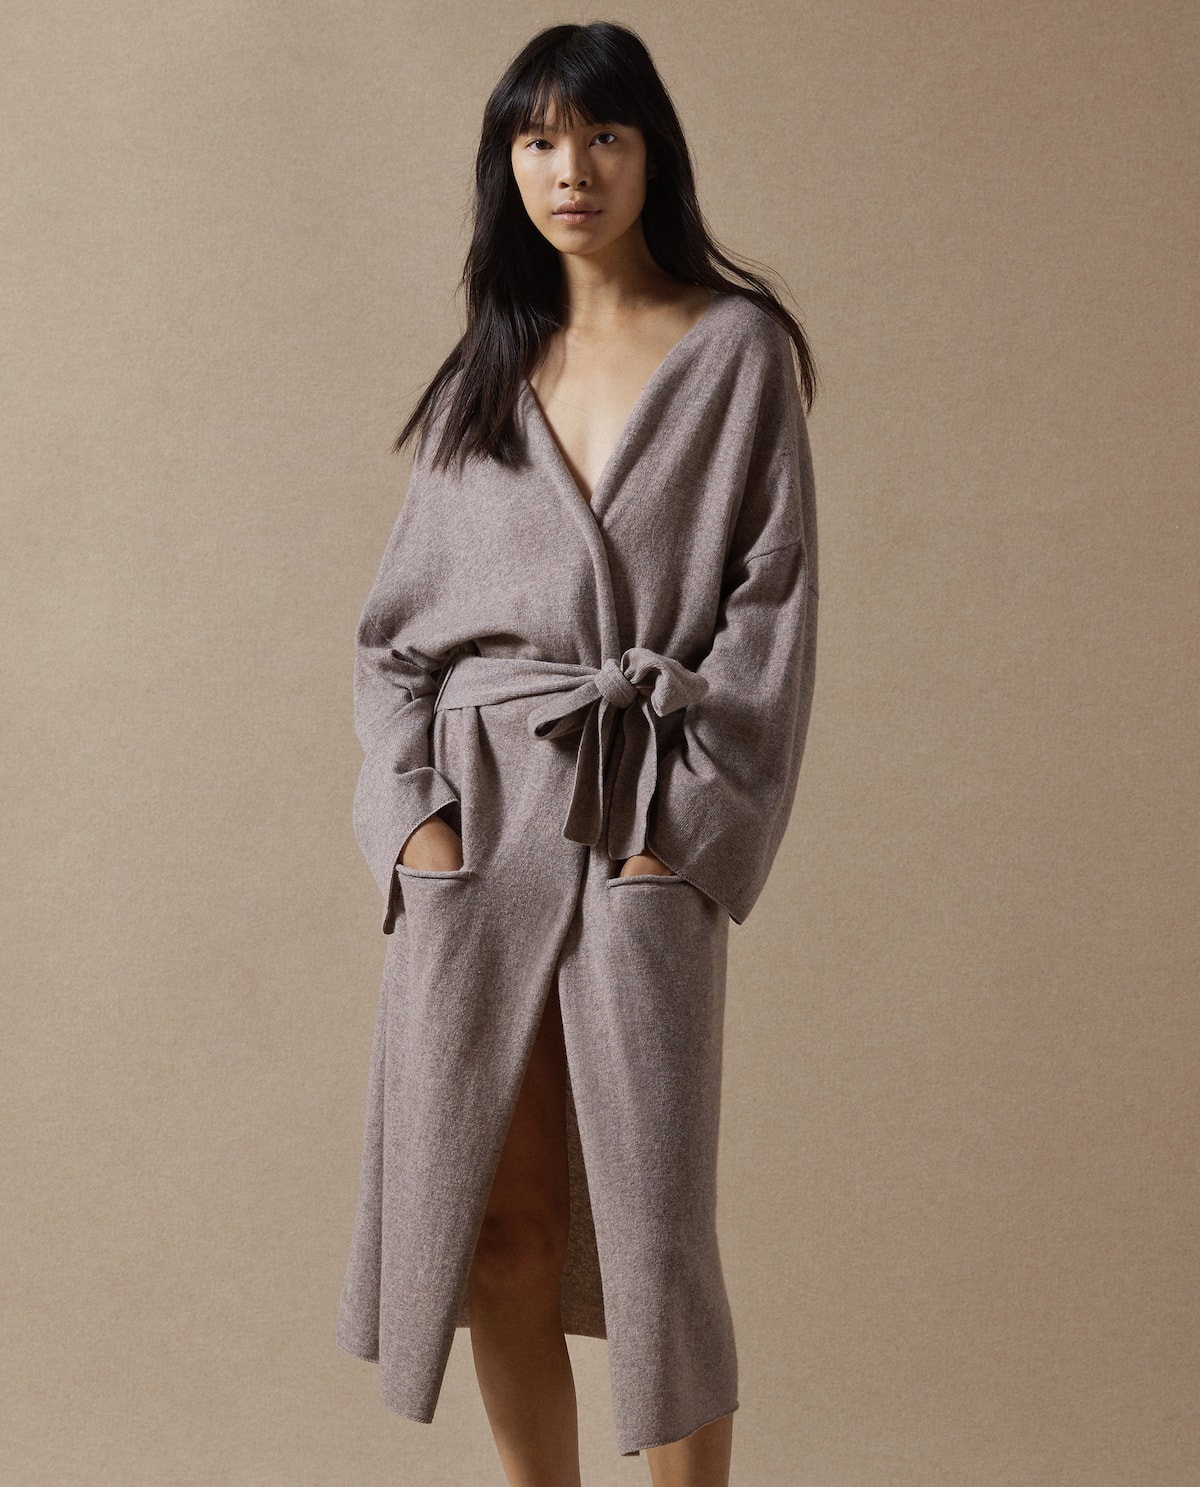 WOOL AND CASHMERE DRESSING GOWN - VIEW ALL - WOMEN\'S LOUNGEWEAR ...